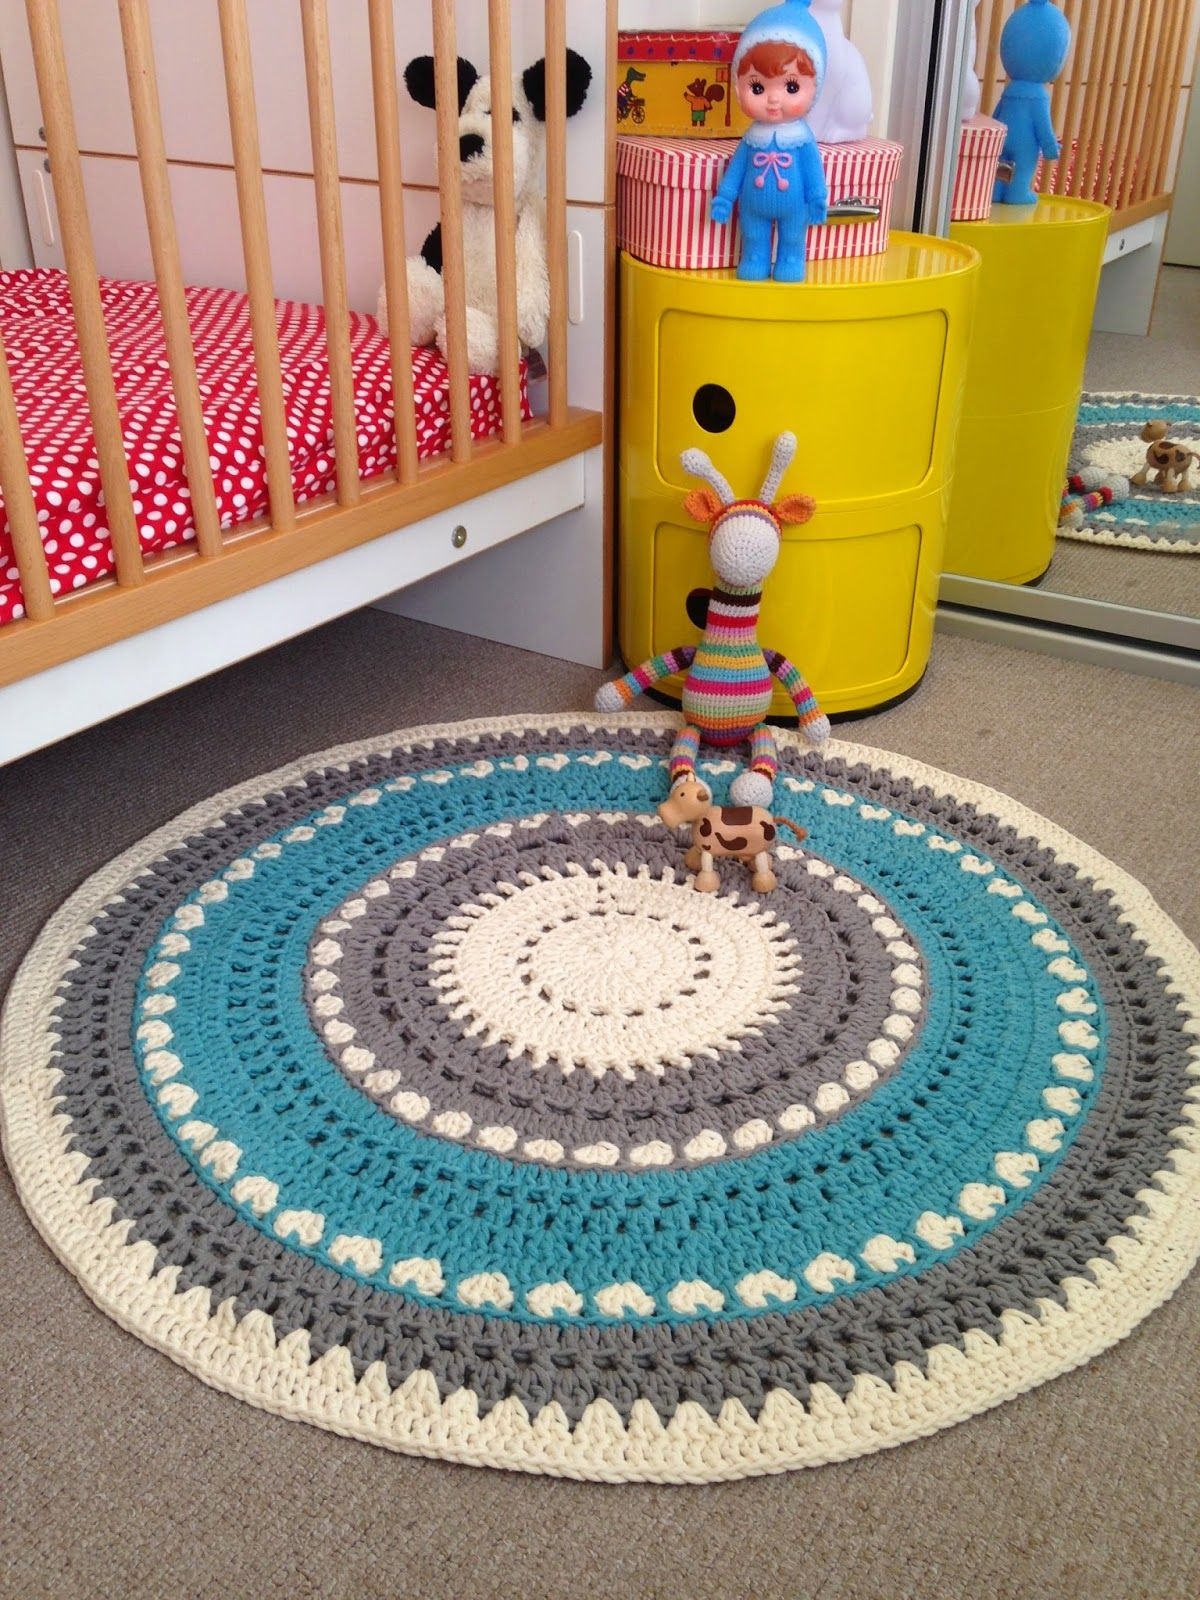 I Love Buttons By Emma: Crochet Floor Rug | DecoObjetos | Pinterest ...